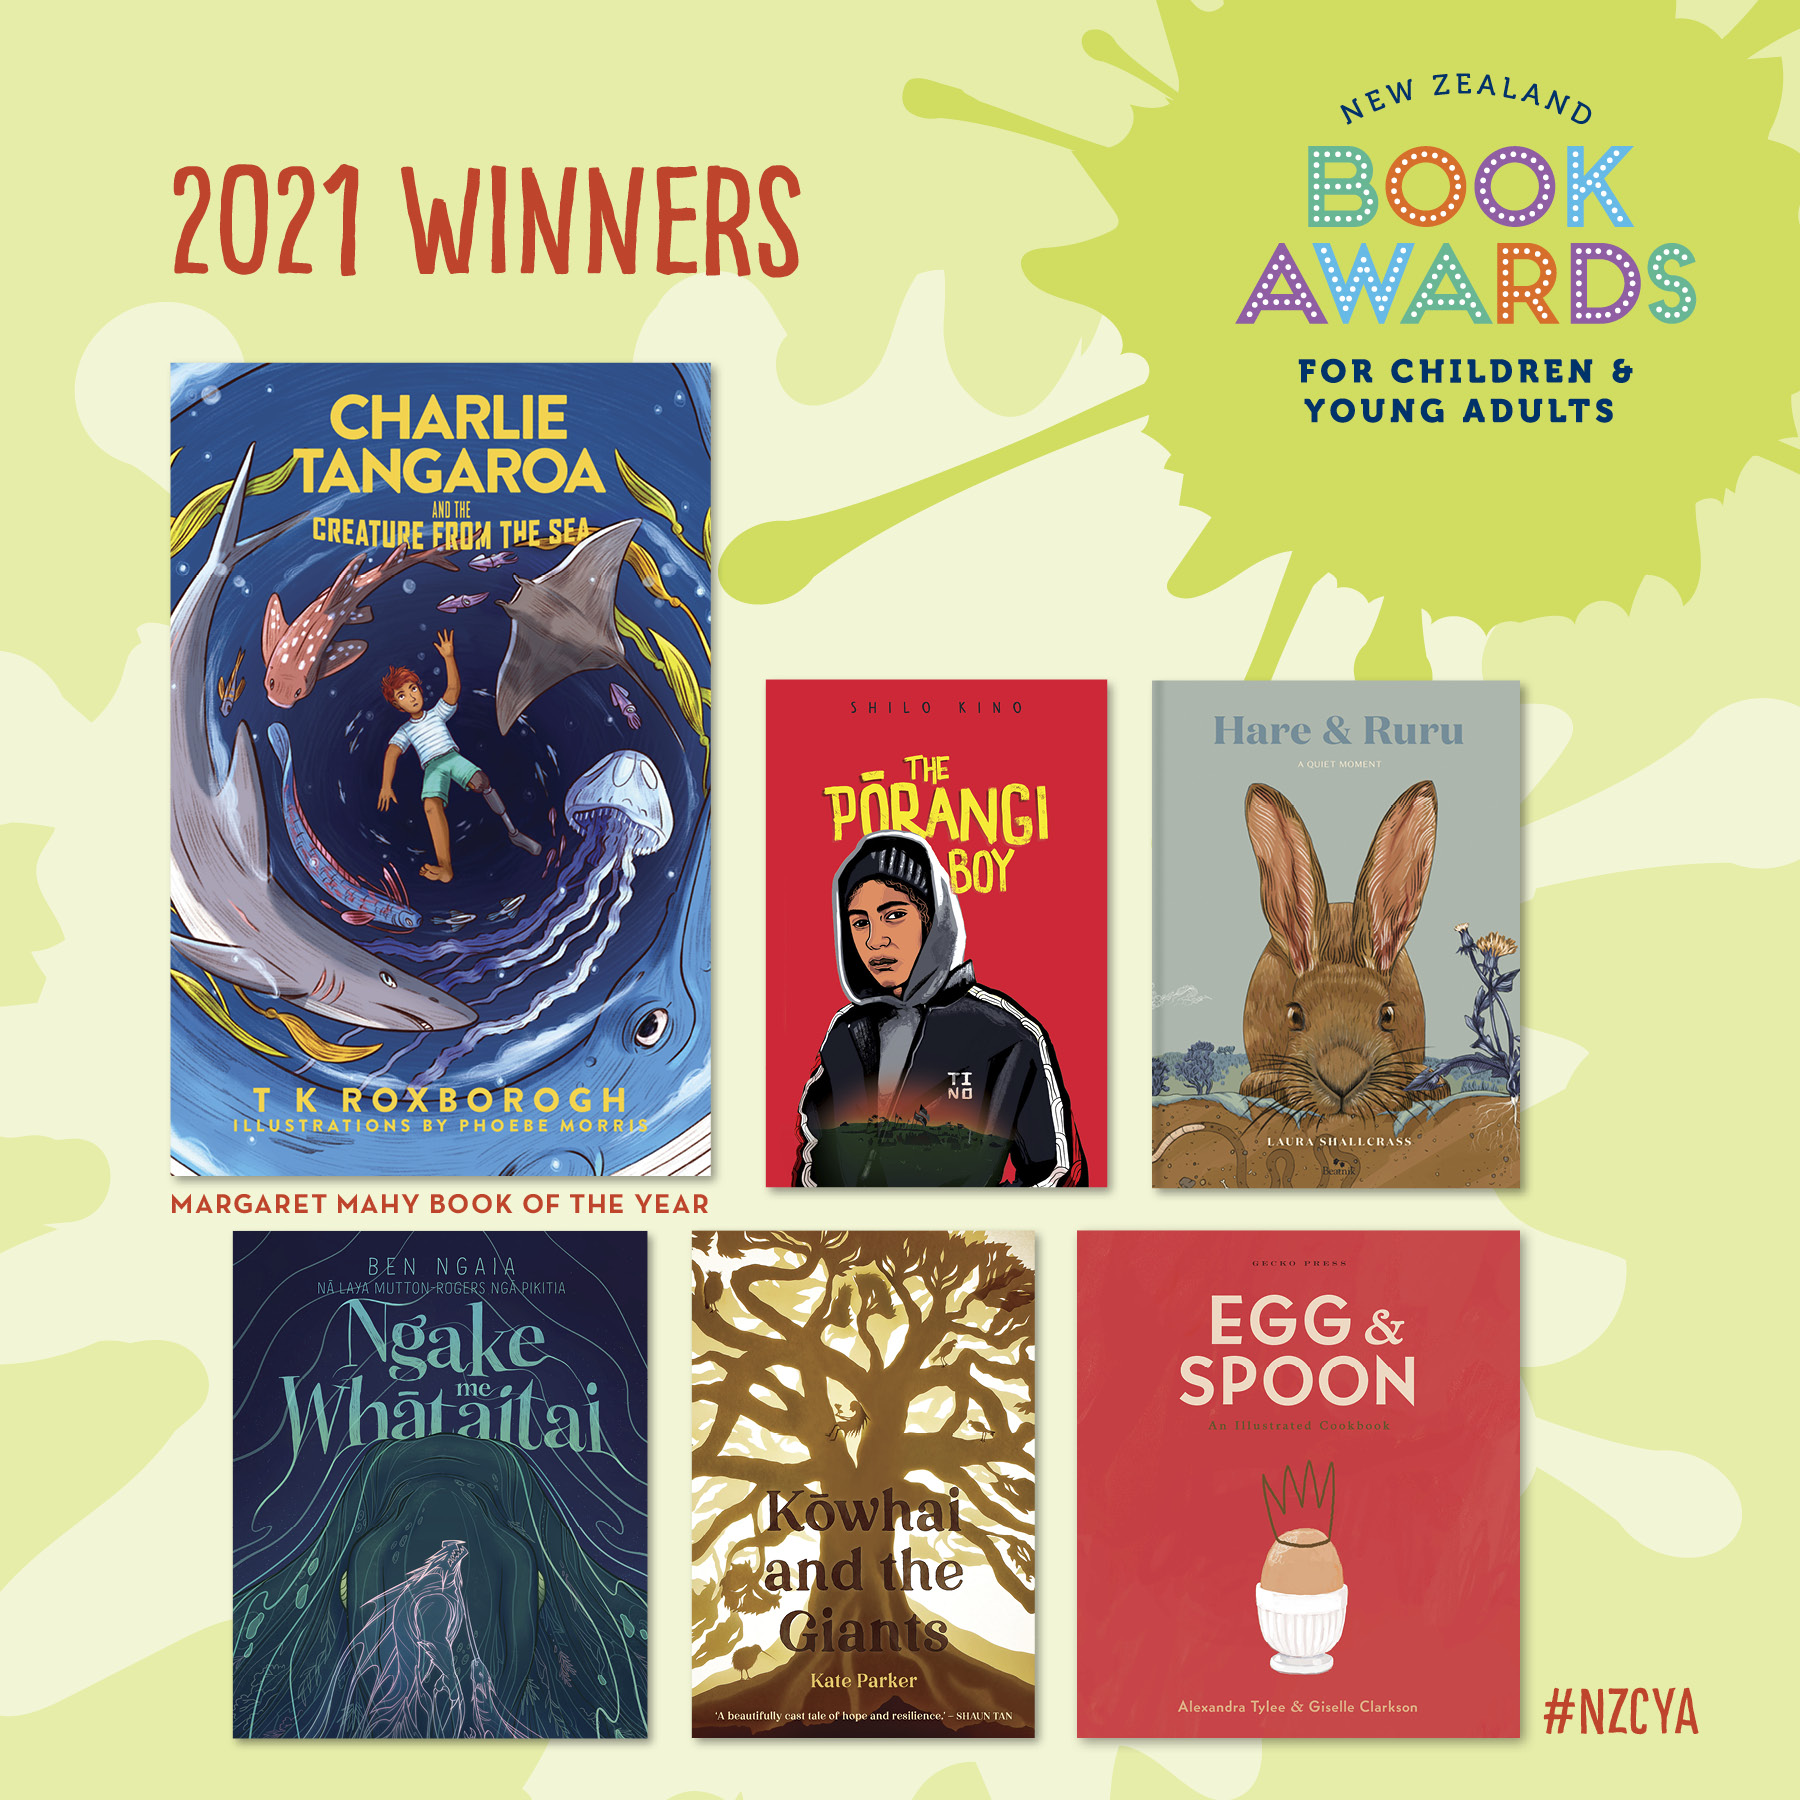 NZ Book Awards For Children & Young Adults